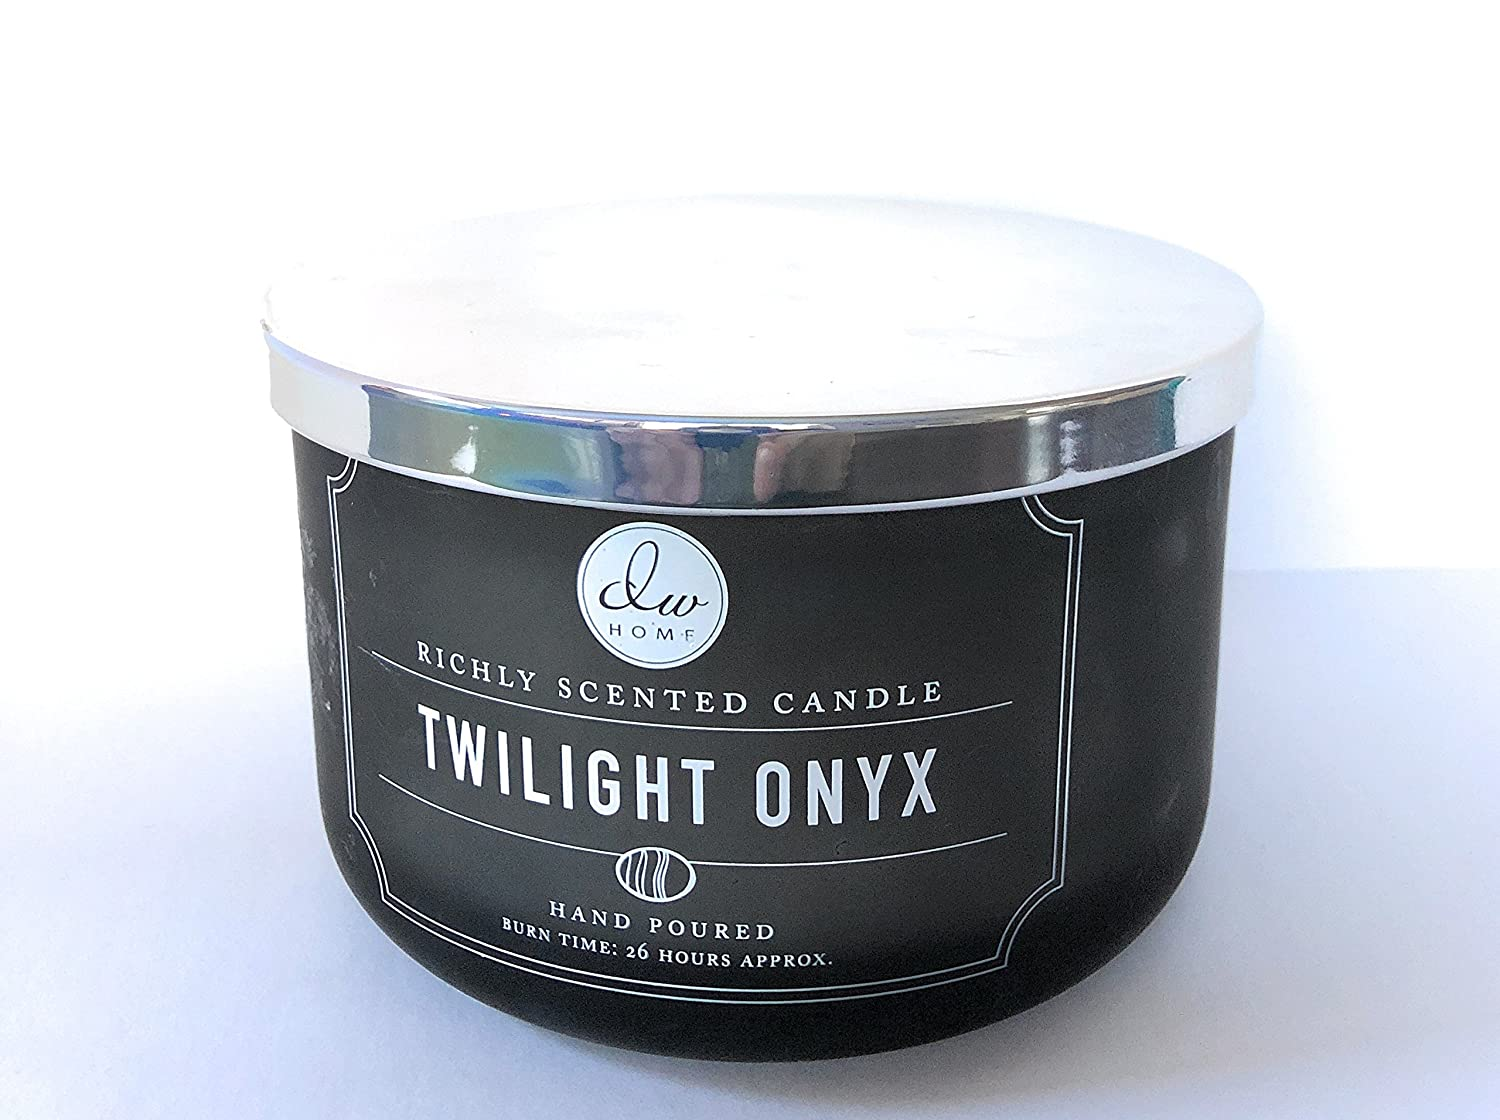 DW Home Twilight Onyx Large Triple Wick Hand Poured Candle 13.4 Oz